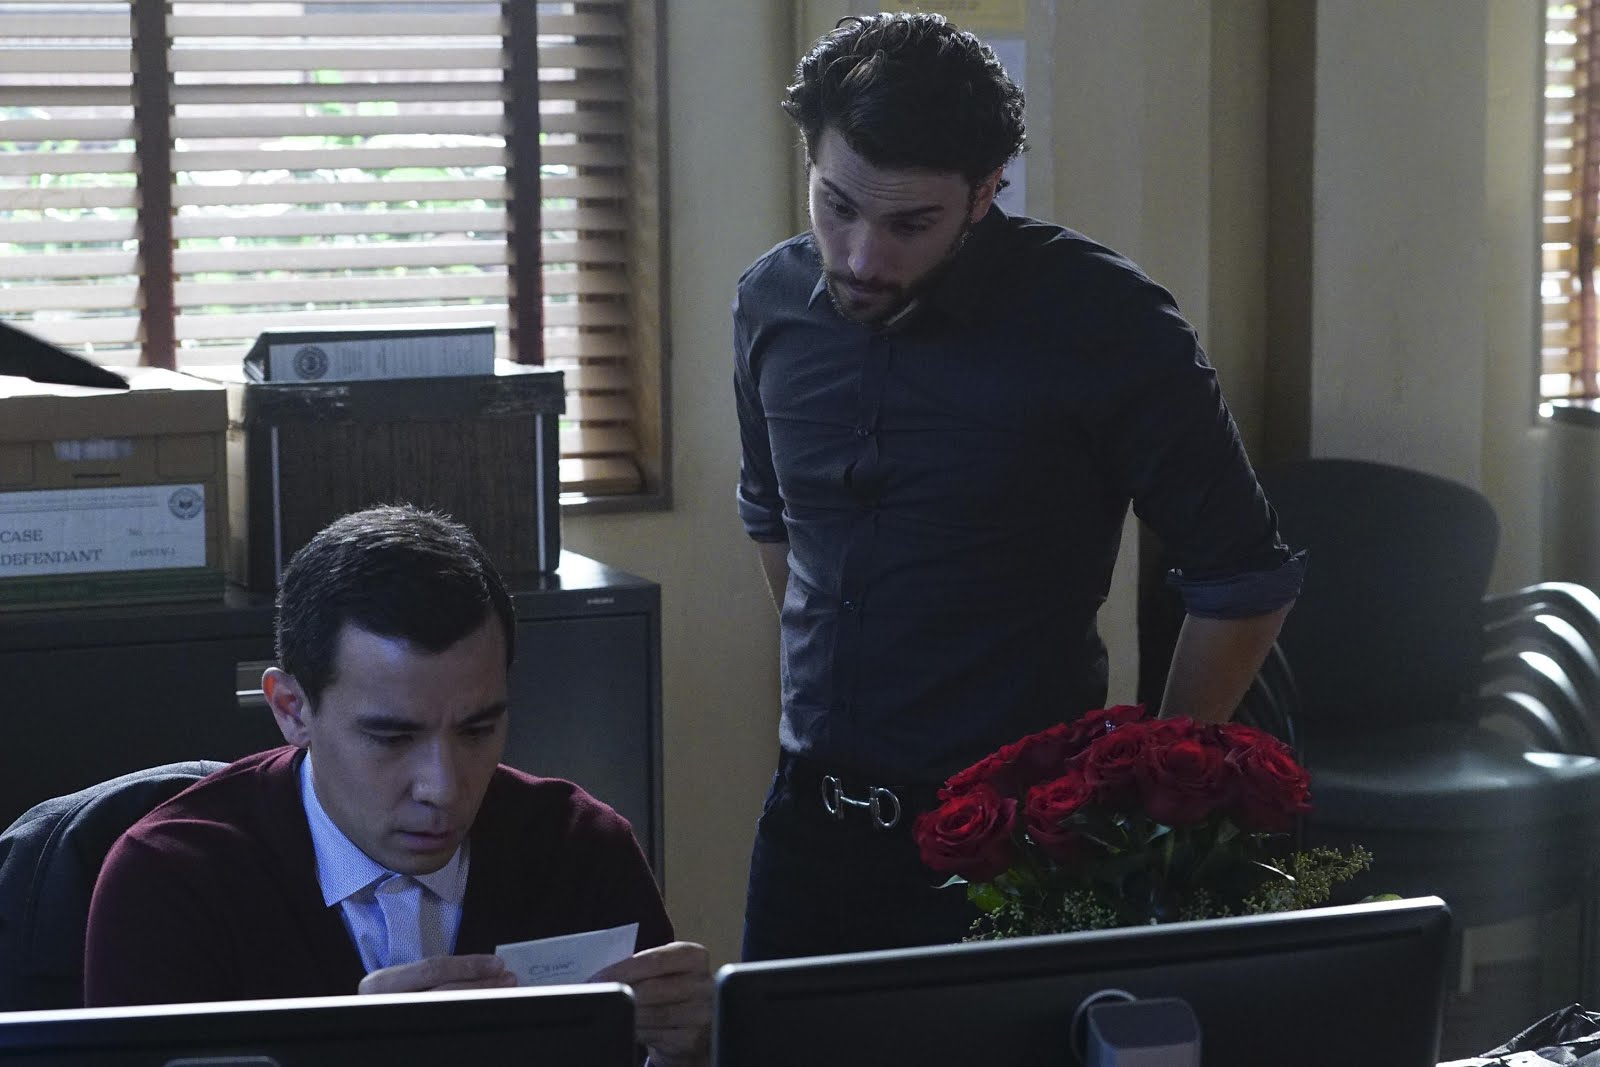 How to Get Away with Murder 3x08 No More Blood HTGAWM Connor Oliver Coliver